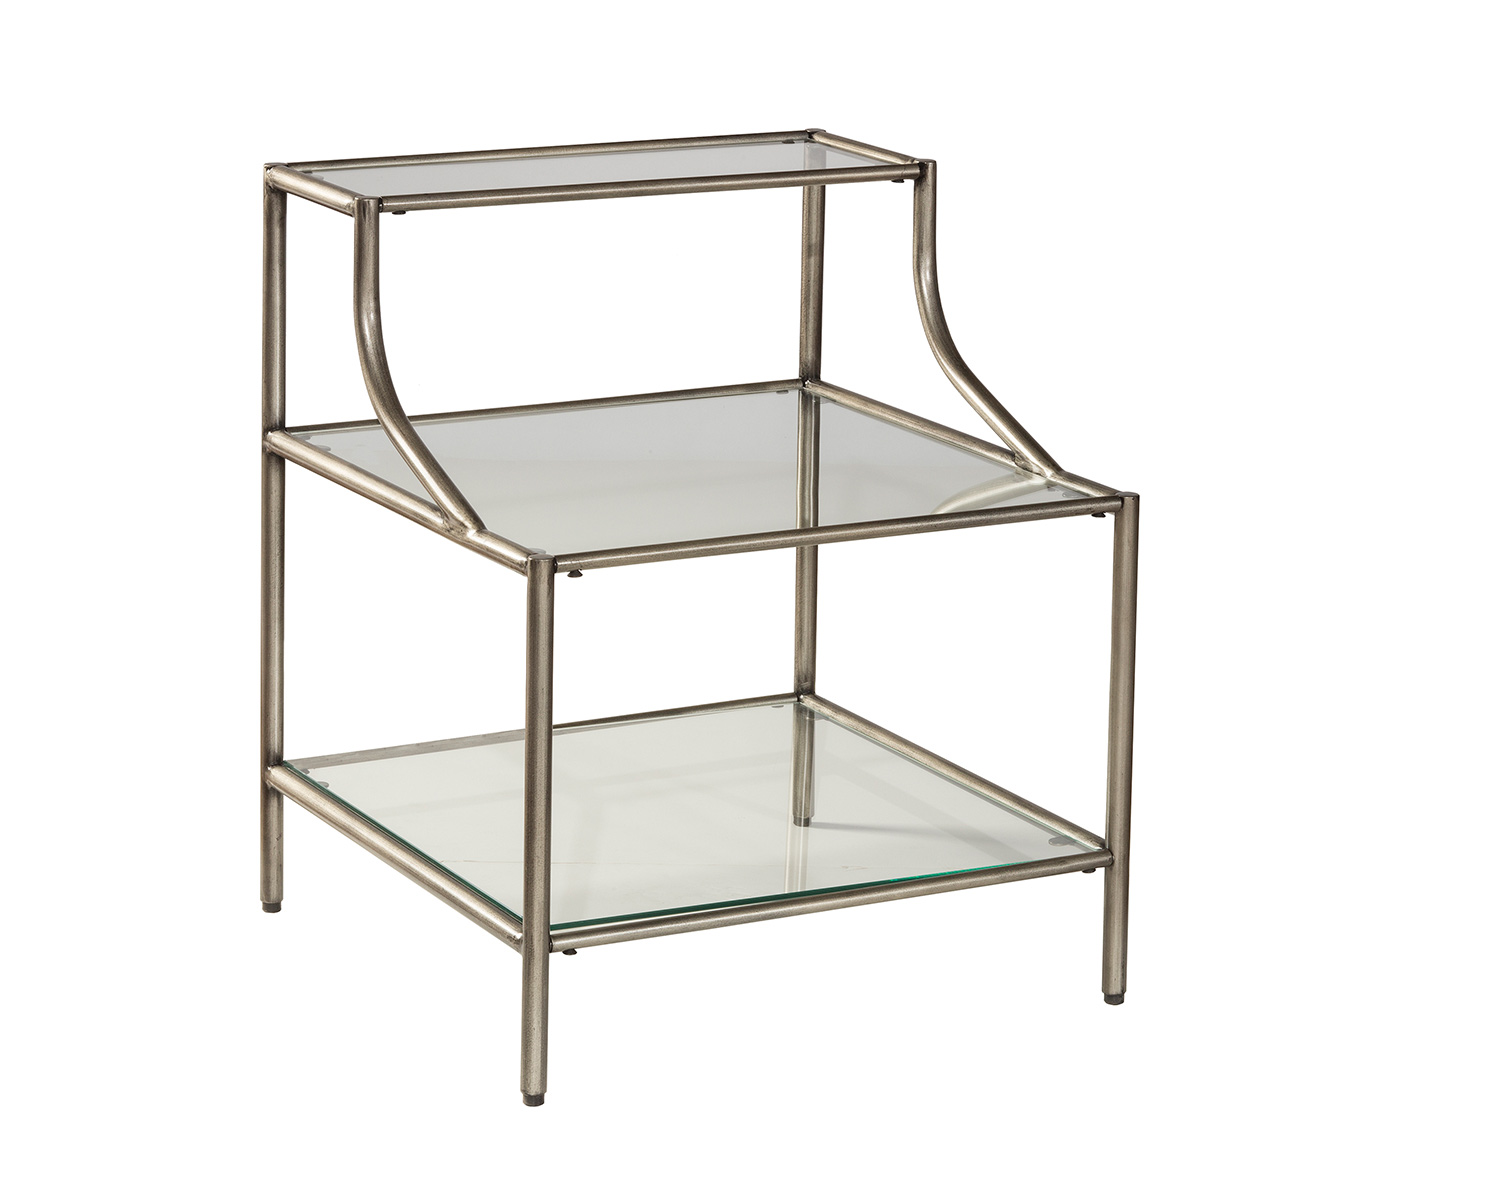 Hillsdale Corbin Step Table with 3-Shelves - Silver/Black